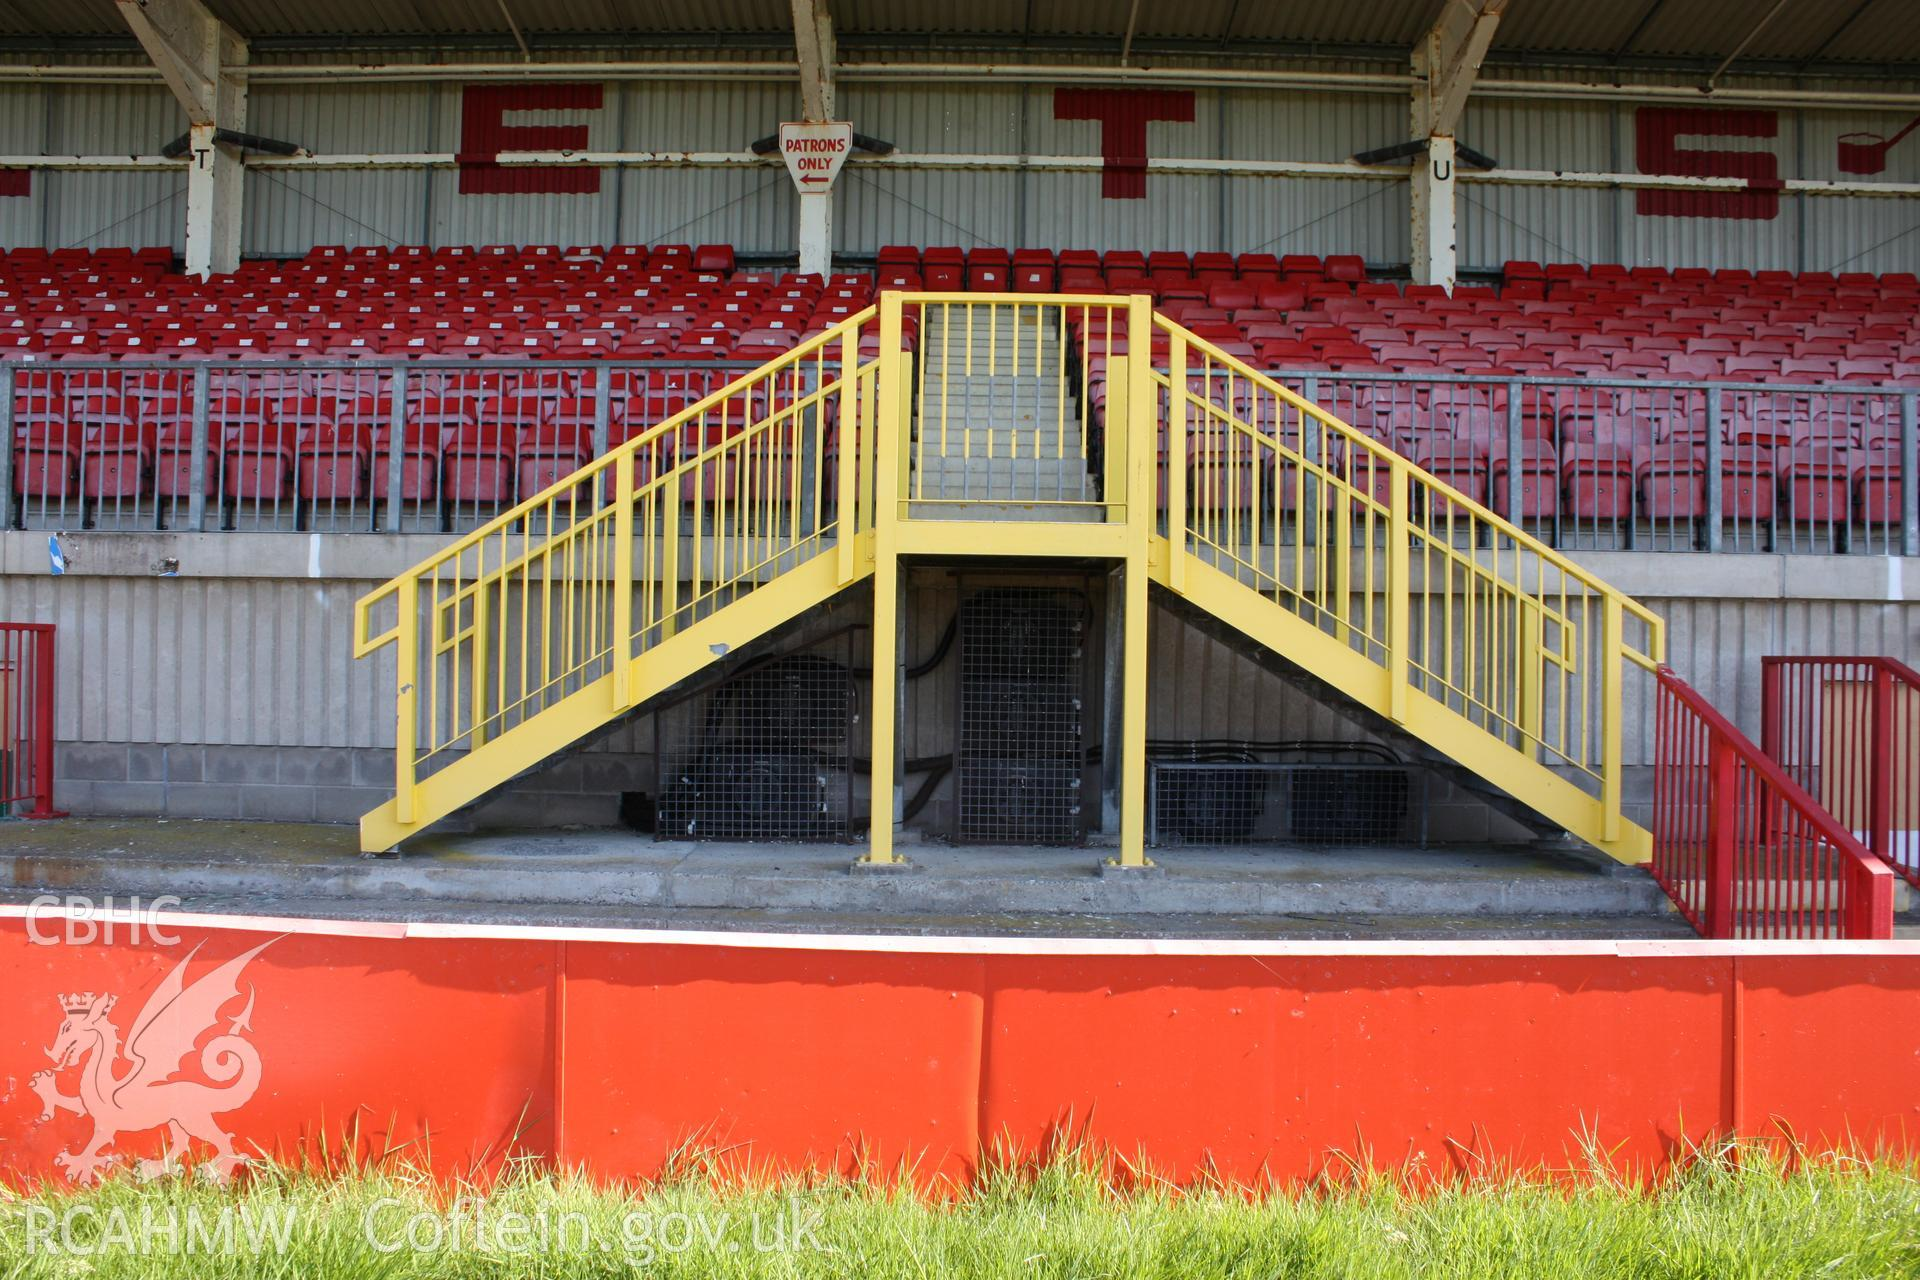 North stand, stairs to upper level